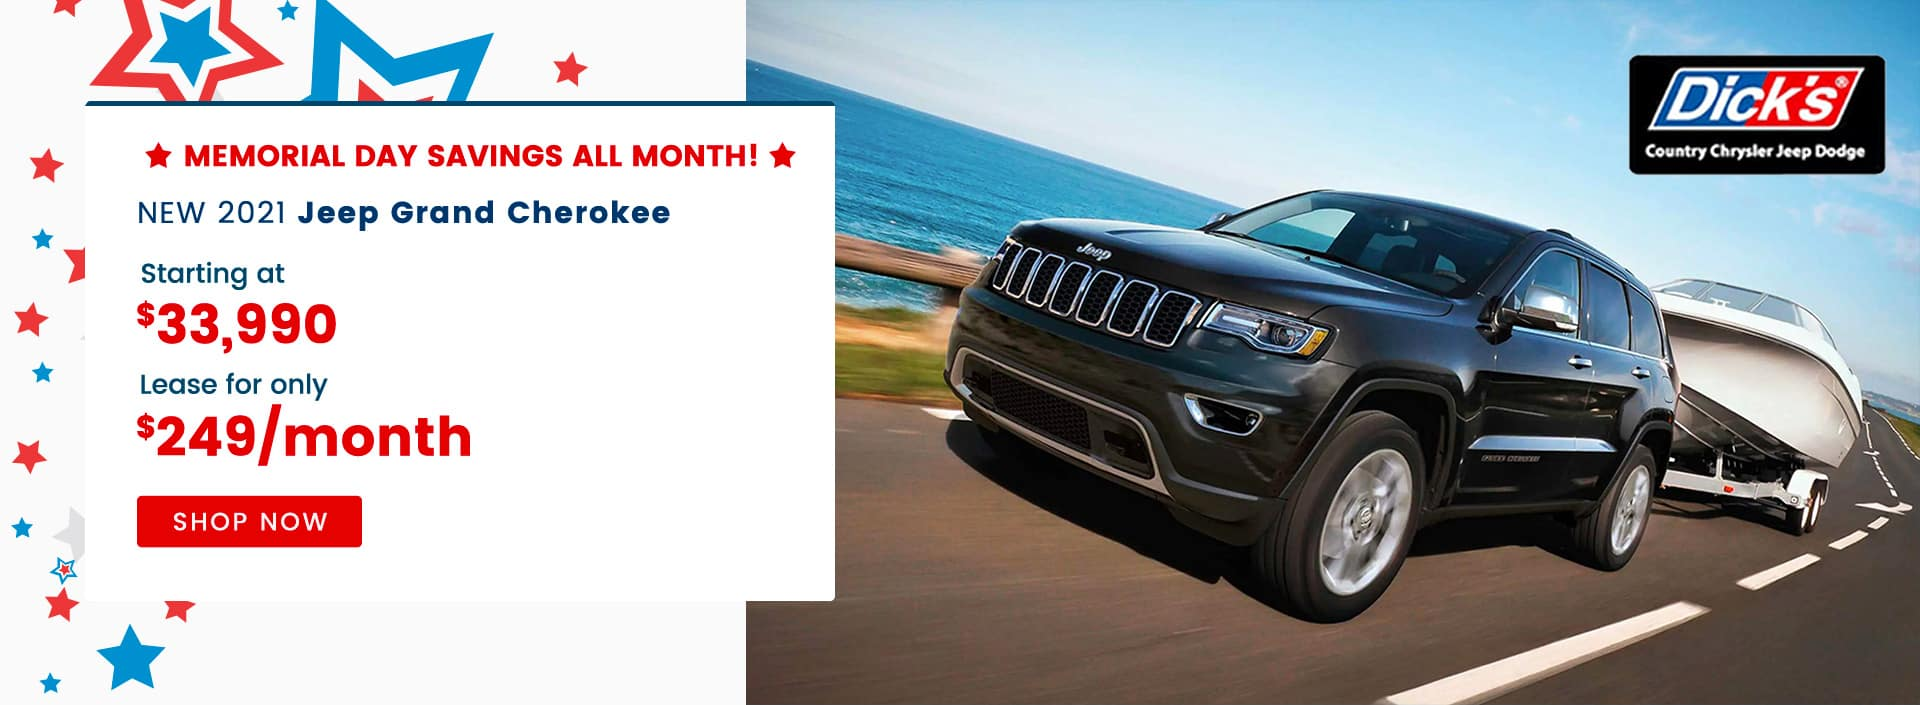 NEW 2021 Jeep Grand Cherokee Starting at $33,990 Lease for only $249/month